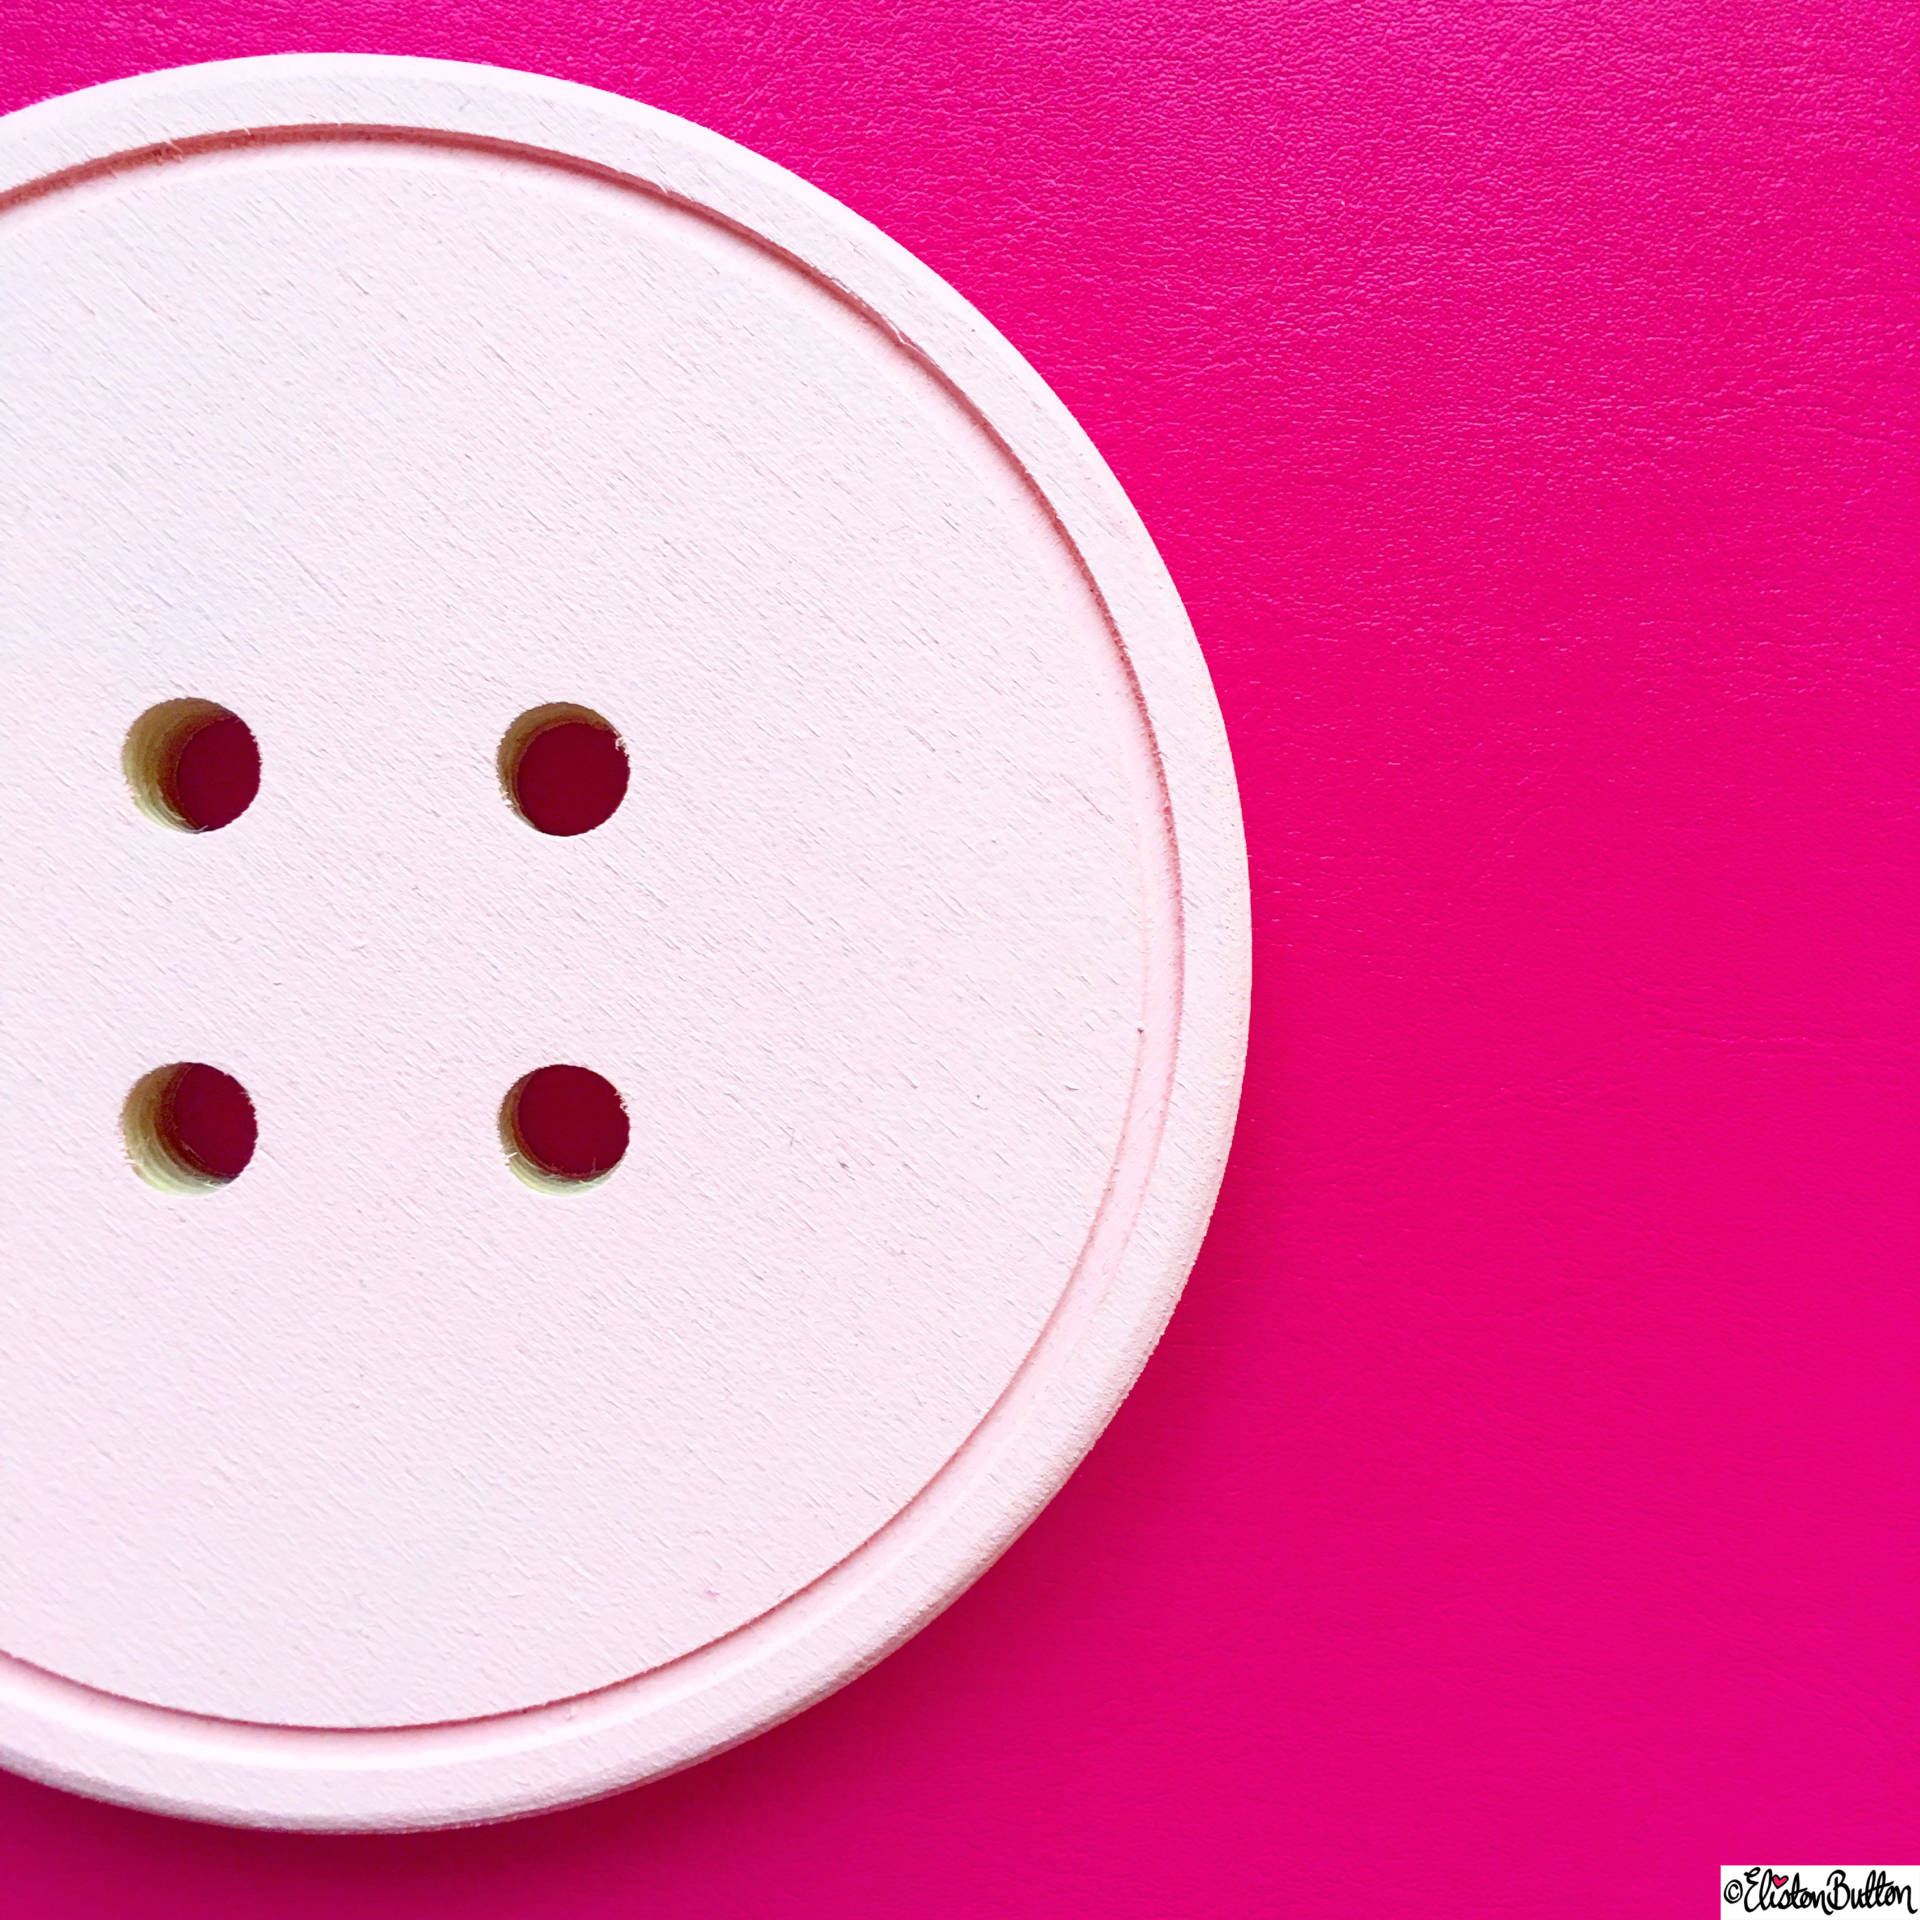 Day 12 - Hole - Giant Pink Wooden Button - Photo-a-Day – April 2016 at www.elistonbutton.com - Eliston Button - That Crafty Kid – Art, Design, Craft & Adventure.